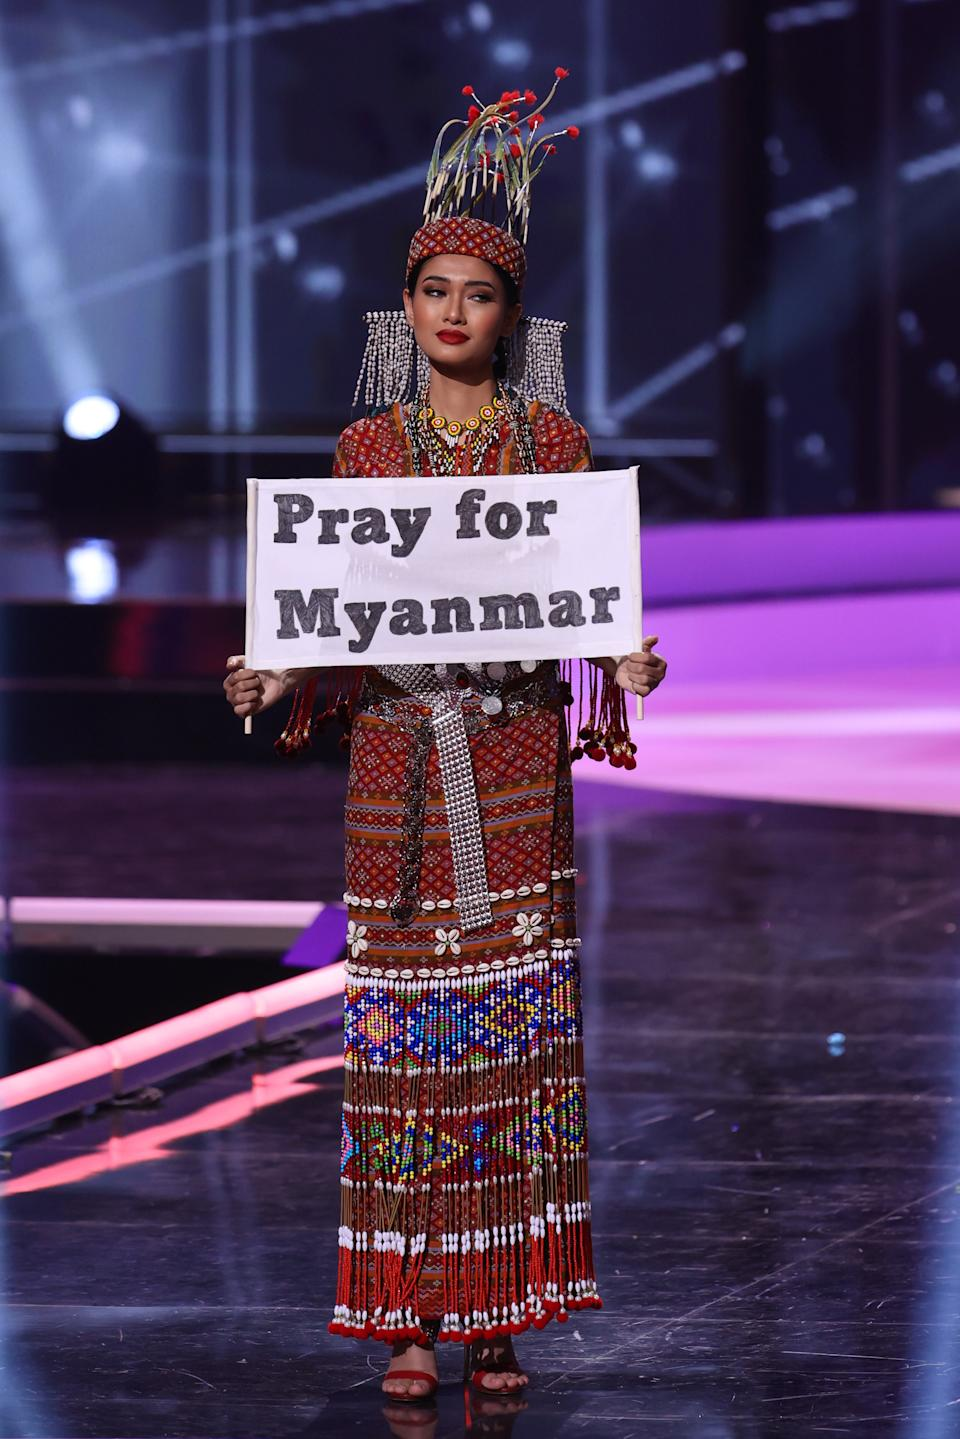 <p>Miss Myanmar Thuzar Wint Lwin appears onstage at the Miss Universe 2021 - National Costume Show at Seminole Hard Rock Hotel & Casino on May 13, 2021 in Hollywood, Florida. (Photo by Rodrigo Varela/Getty Images)</p>